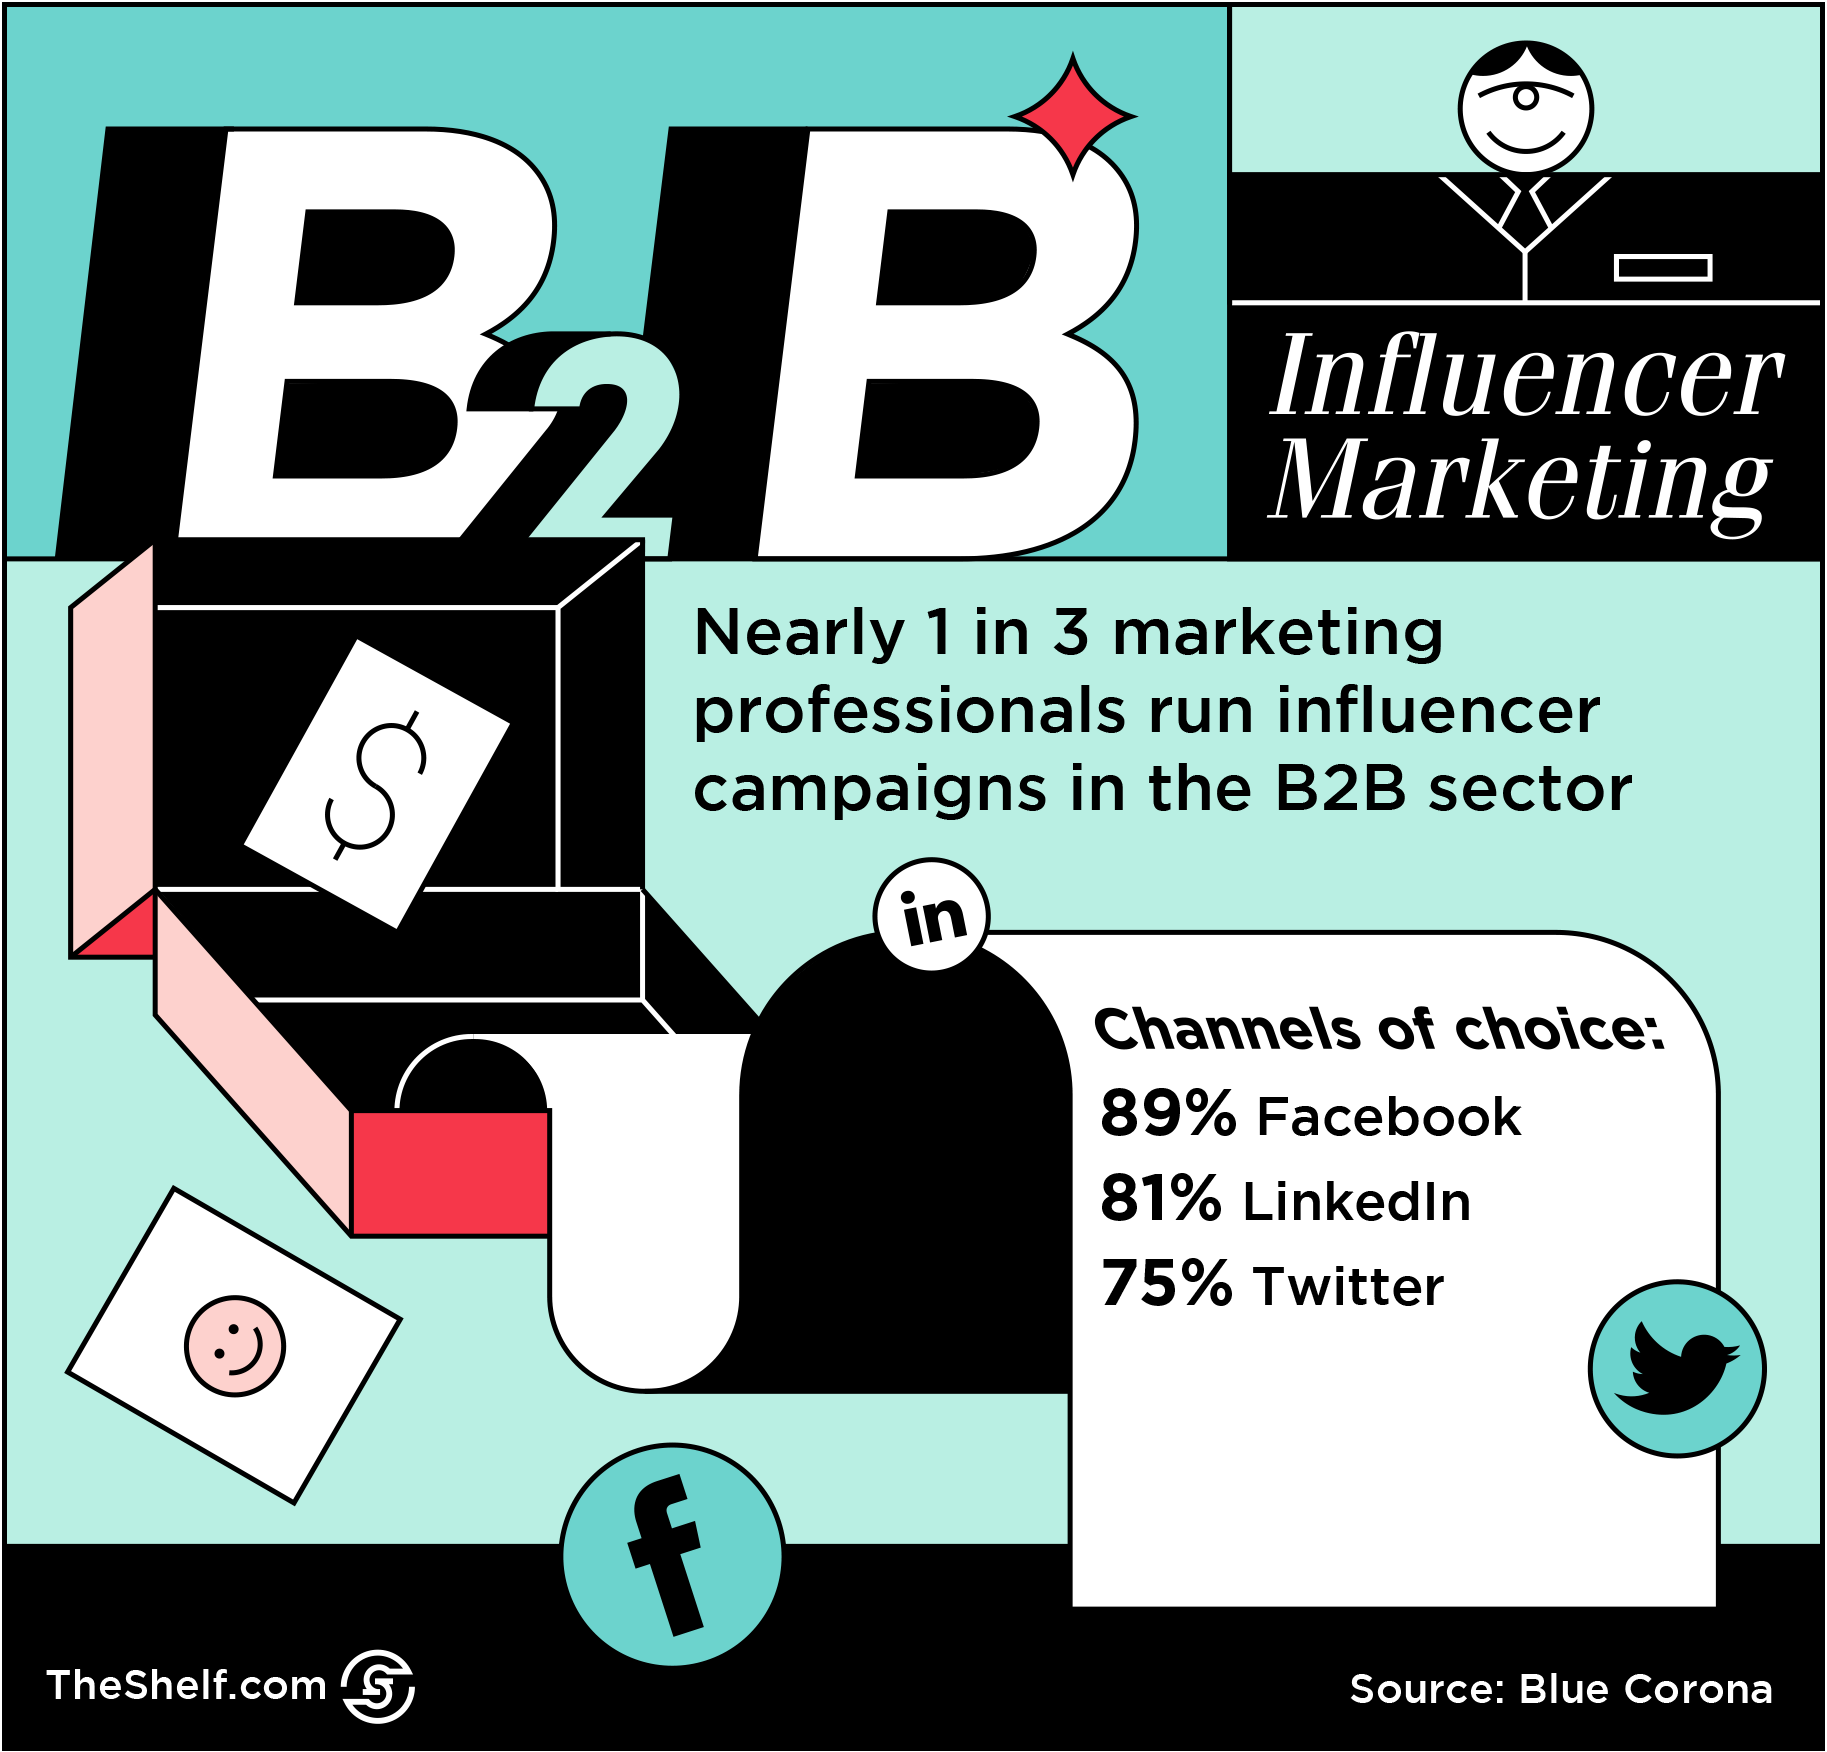 #90 Three Tips for Finding the Right Influencers for Your B2B Marketing_2.png